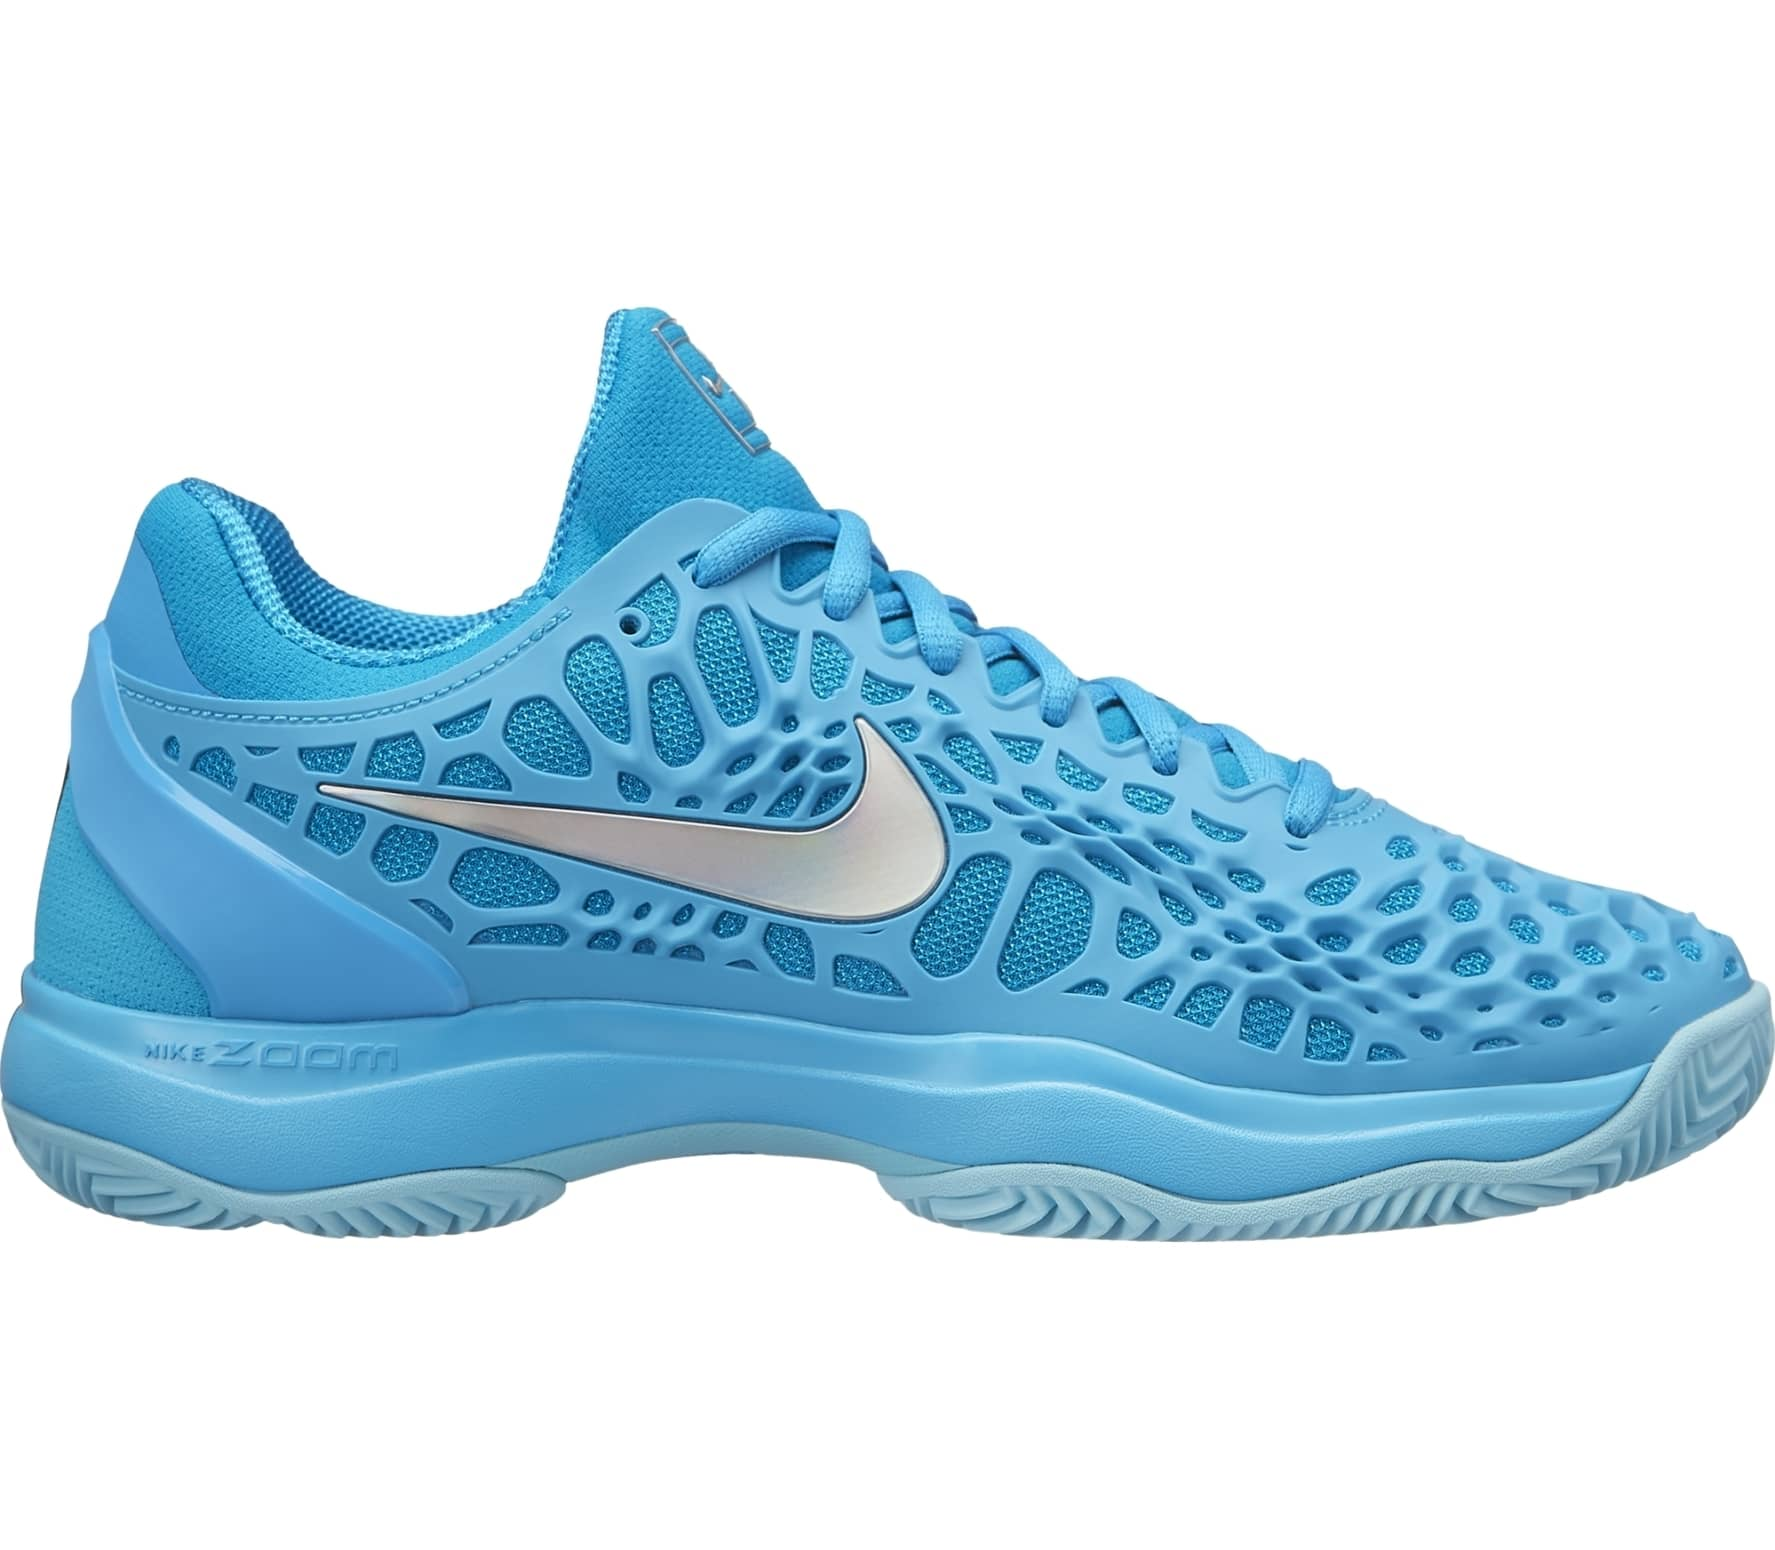 new style 23750 e13f2 Nike - Zoom Cage 3 Clay Femmes Chaussure de tennis (bleu clair)